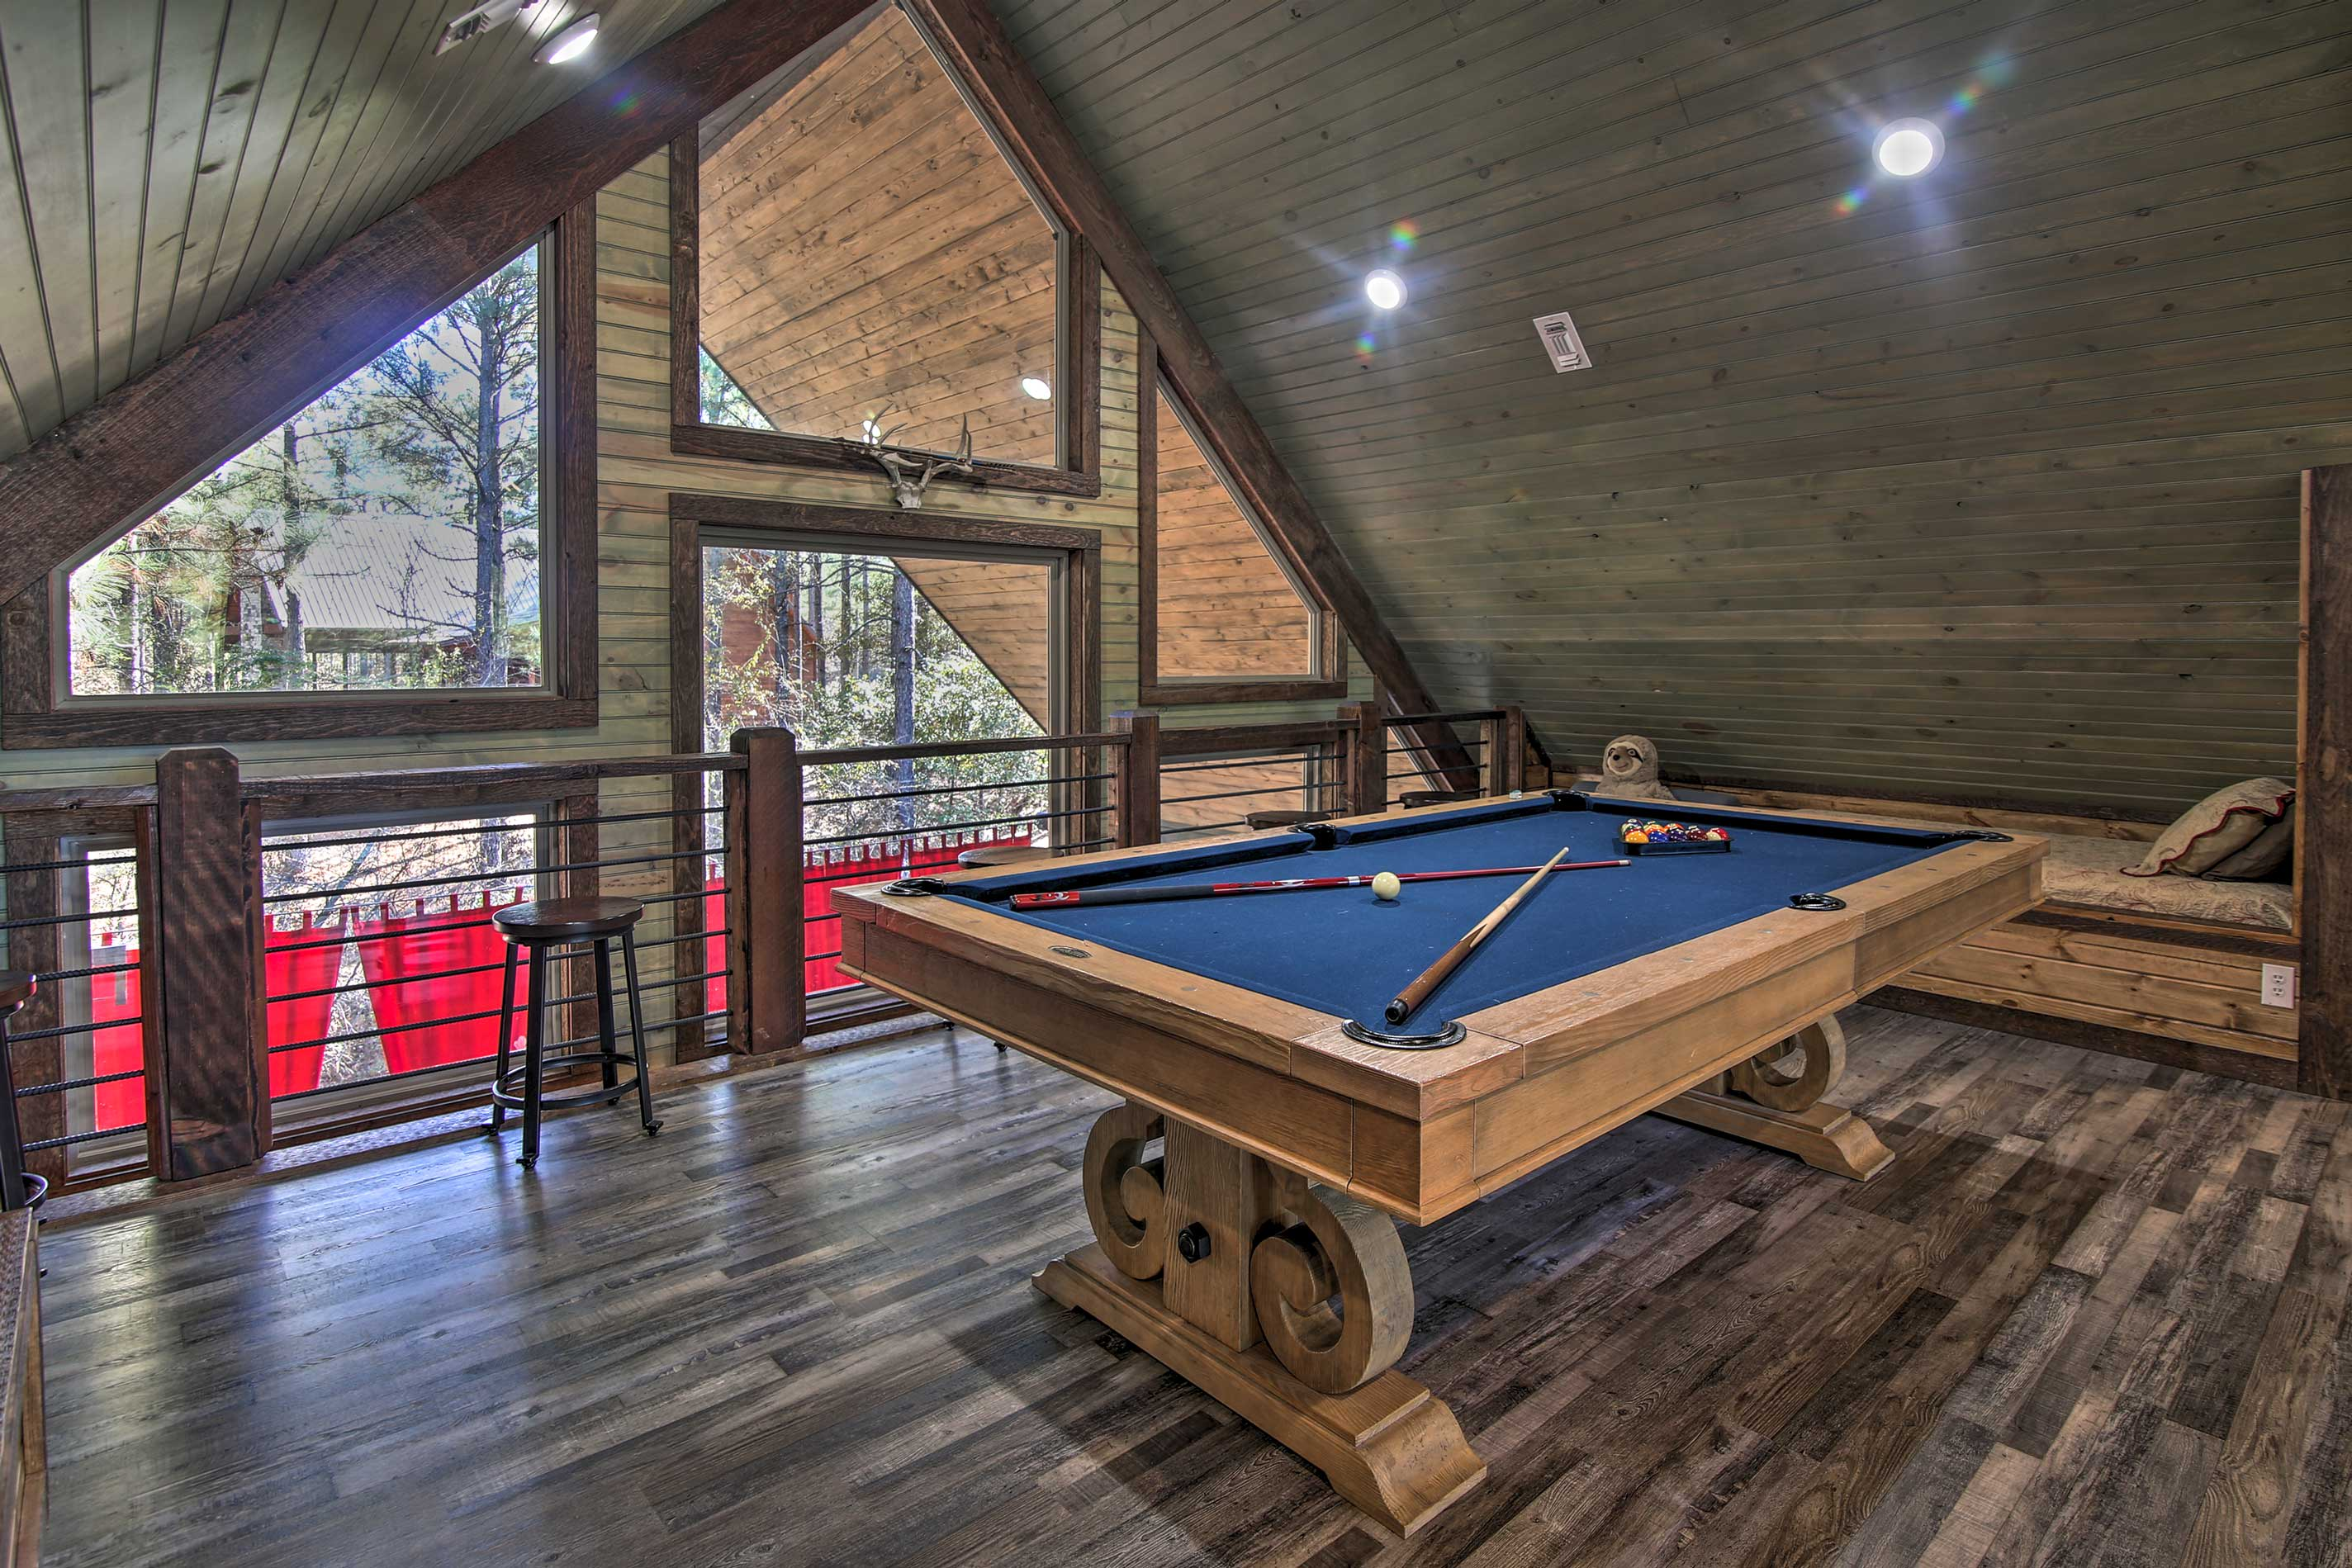 Challenge a loved one to a friendly game of pool!